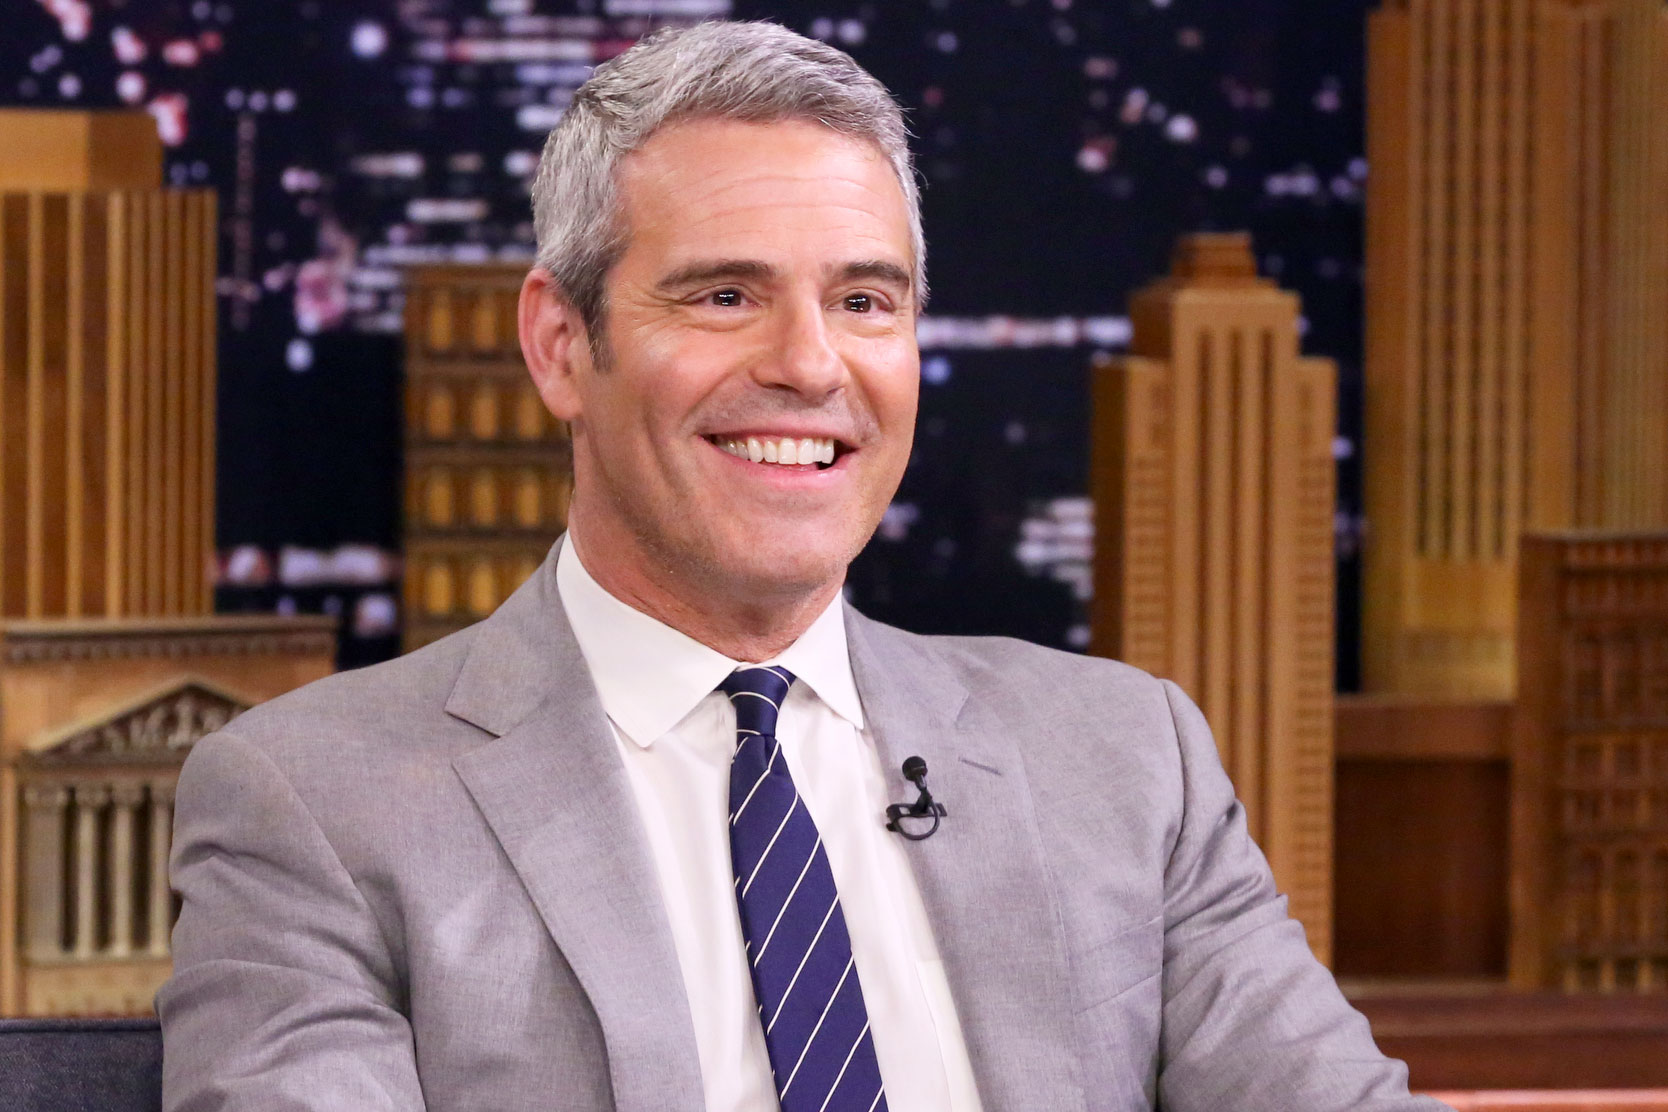 WWHL Returns with New Episodes as Andy Cohen Recovers from Coronavirus